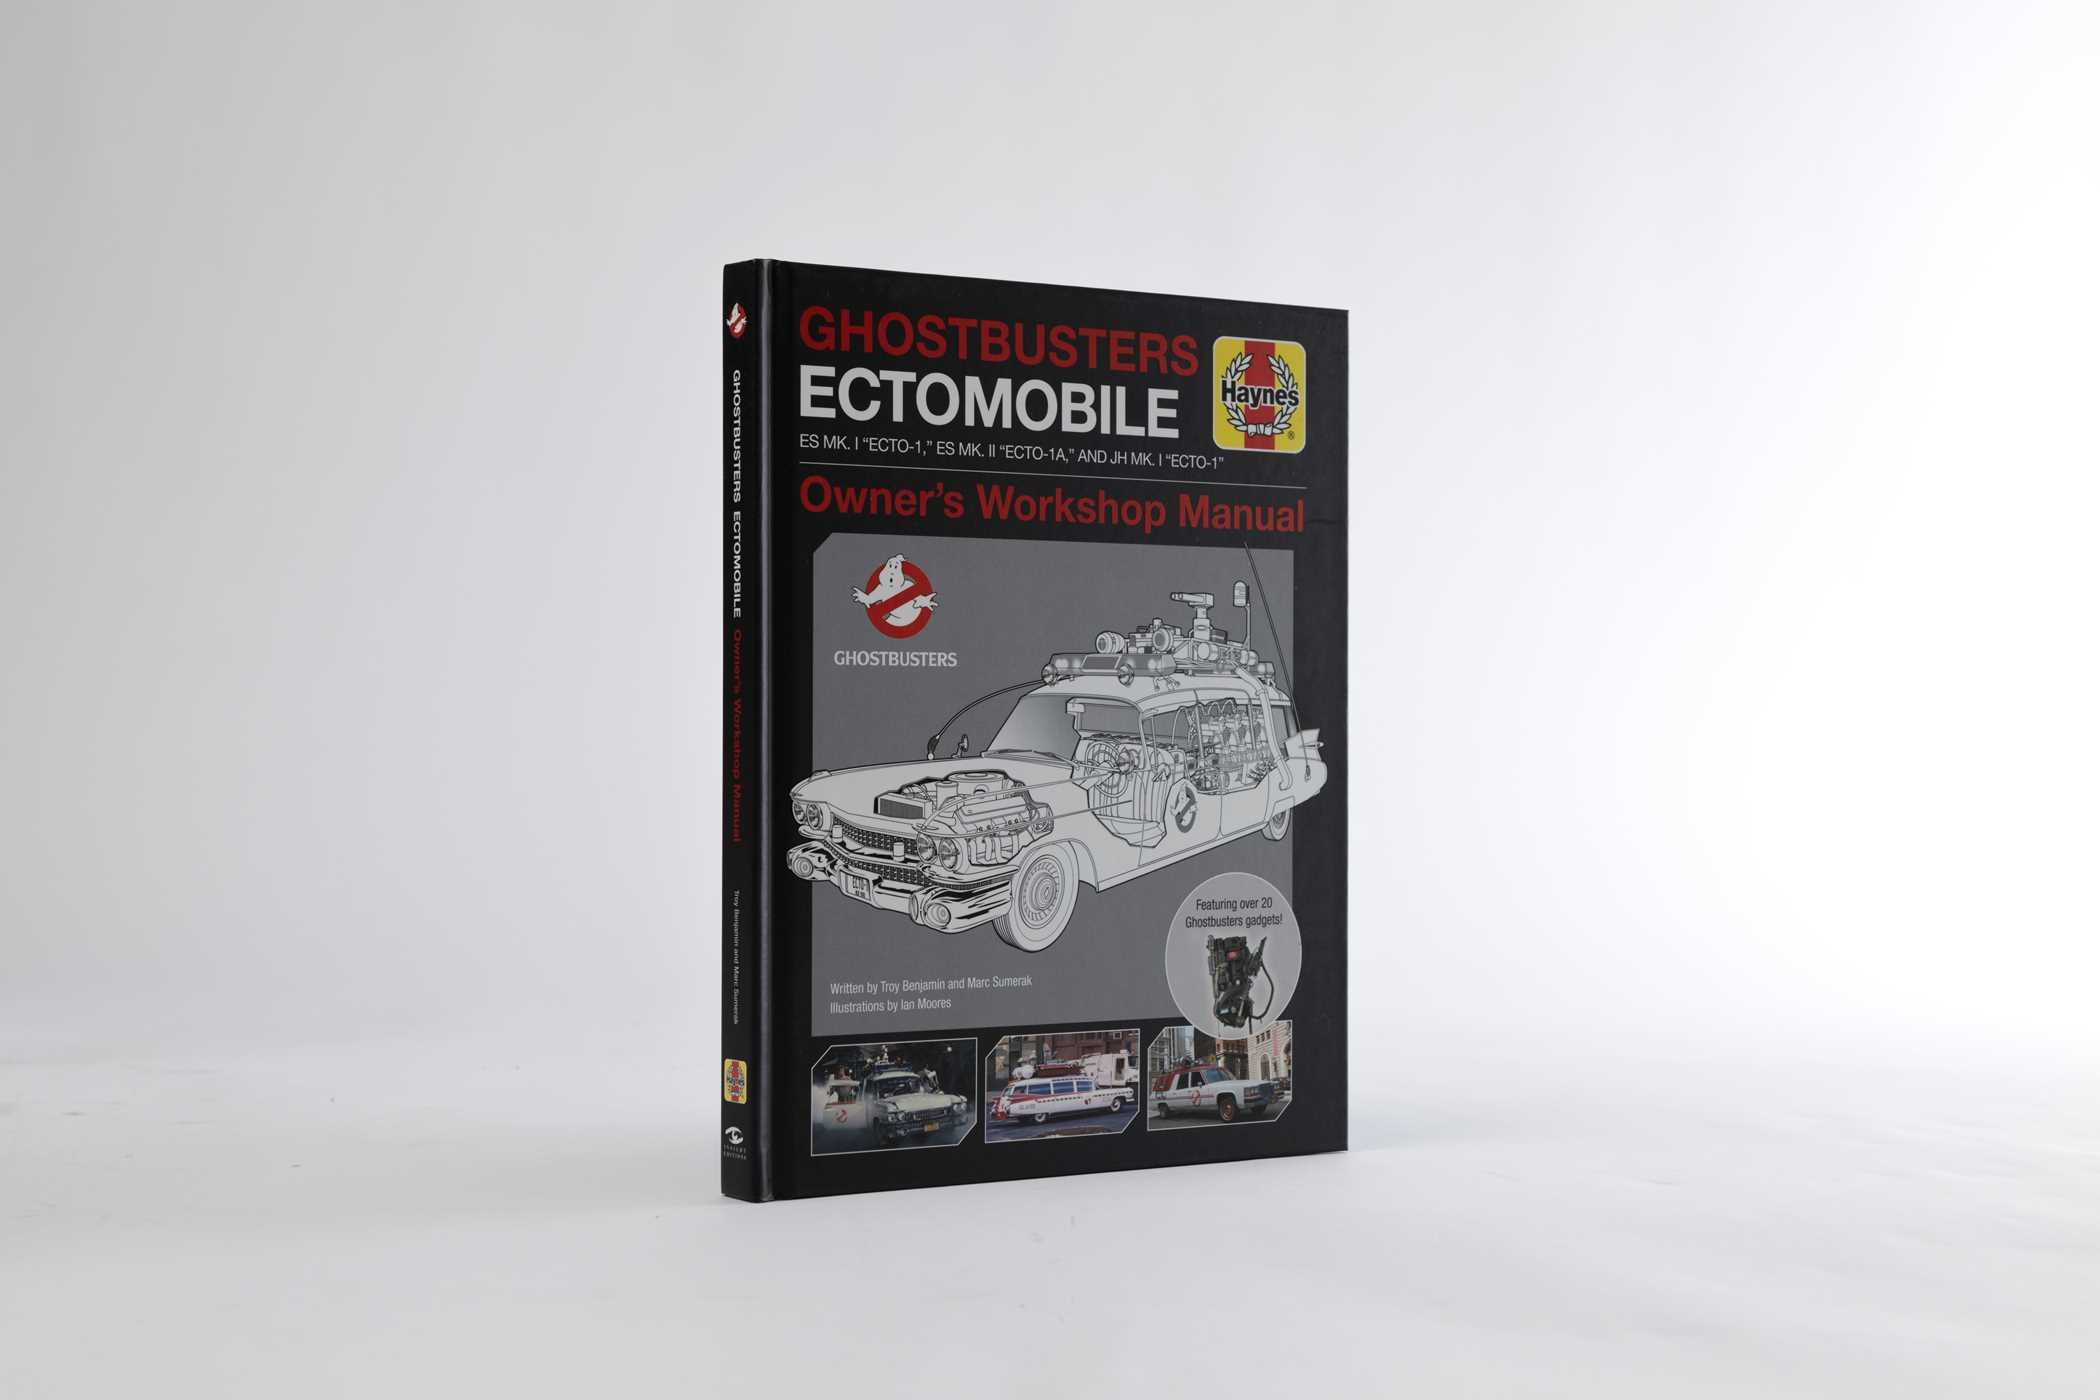 Ghostbusters ectomobile troy benjamin marc sumerak ian moores ghostbusters ectomobile troy benjamin marc sumerak ian moores 9781608875122 amazon books fandeluxe Image collections